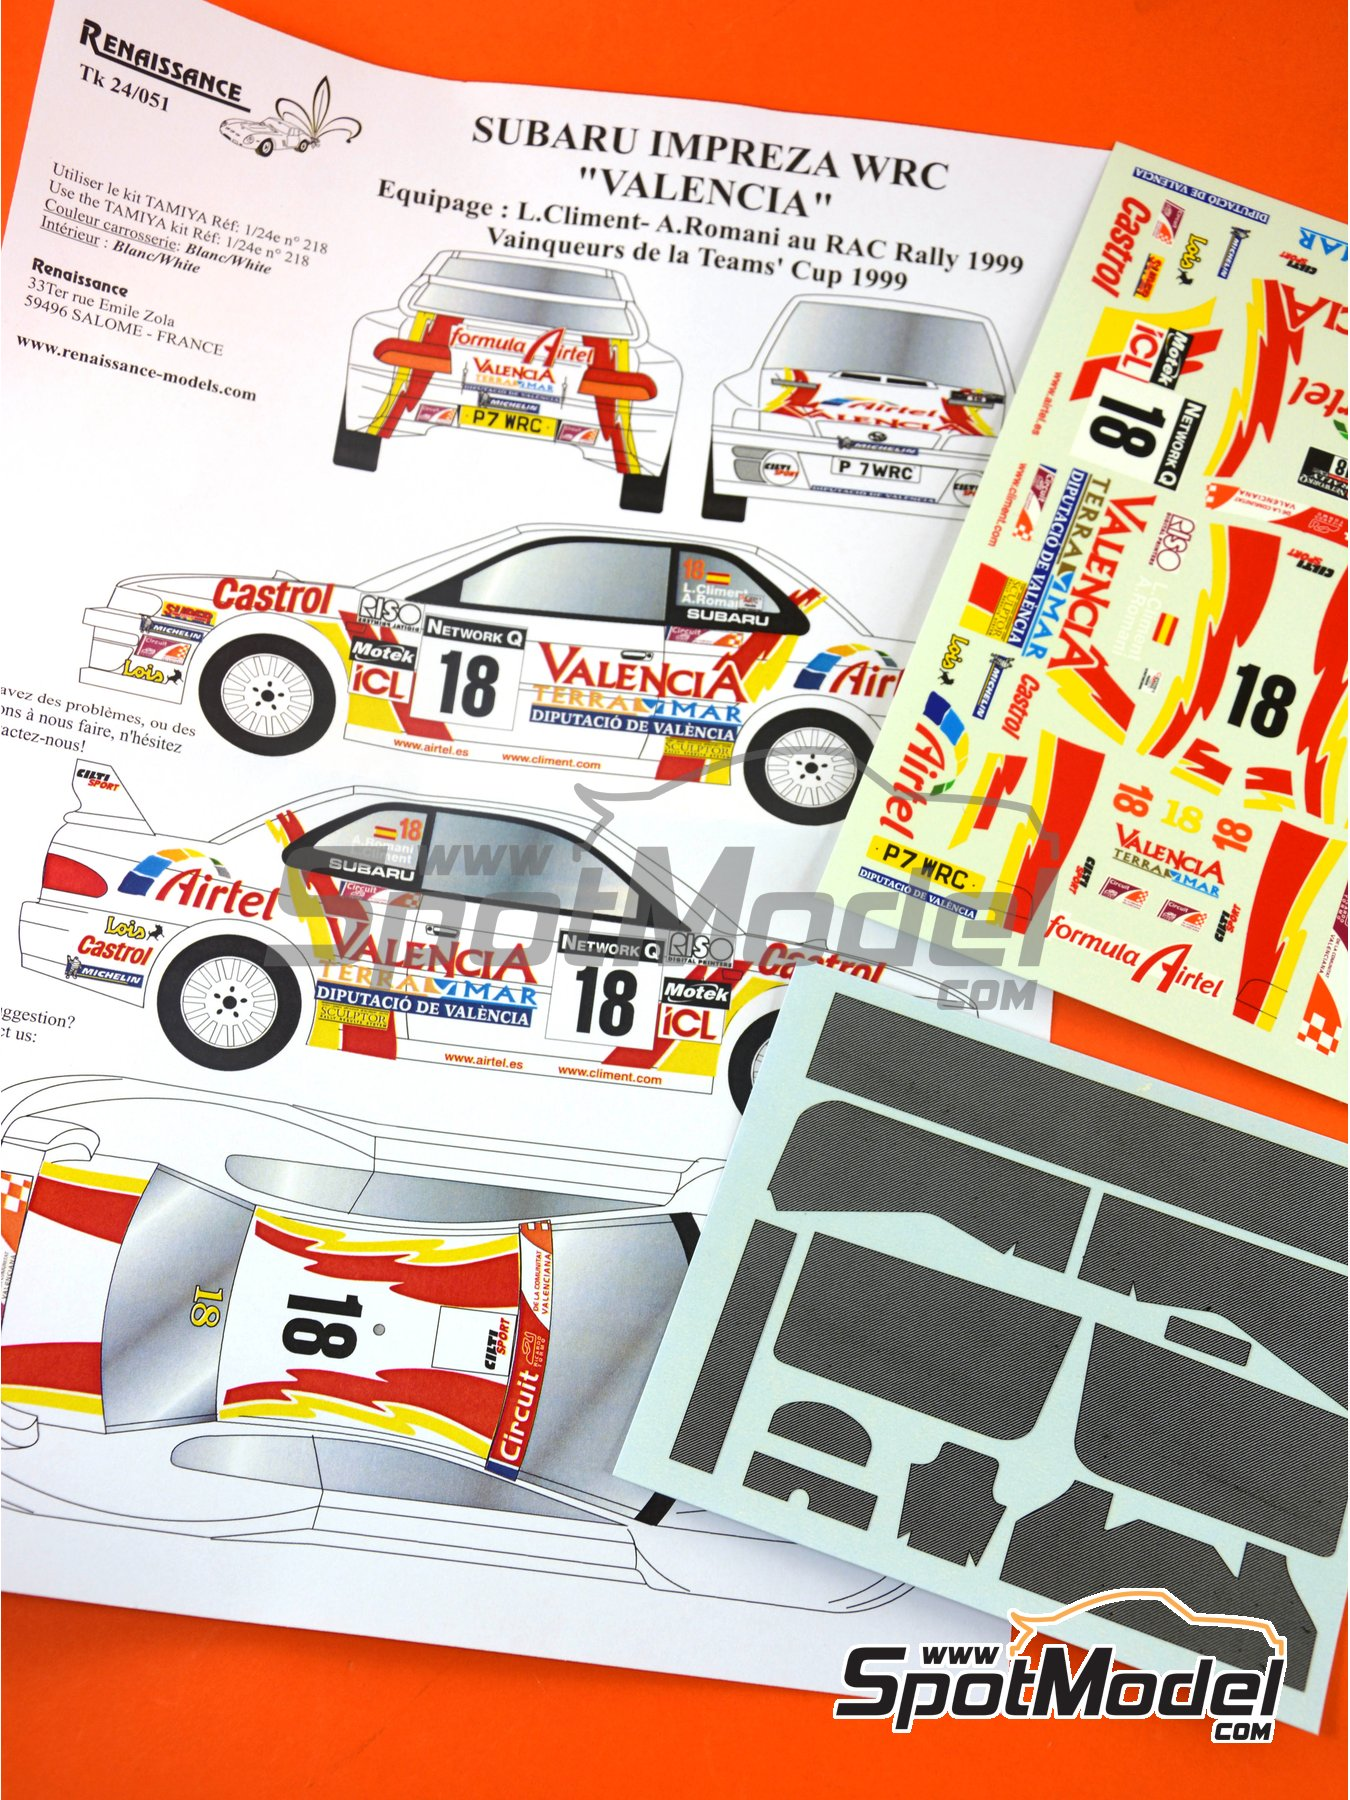 Subaru Impreza WRC Airtel - Great Britain RAC Rally 1999 | Marking / livery in 1/24 scale manufactured by Renaissance Models (ref. TK24-051) image